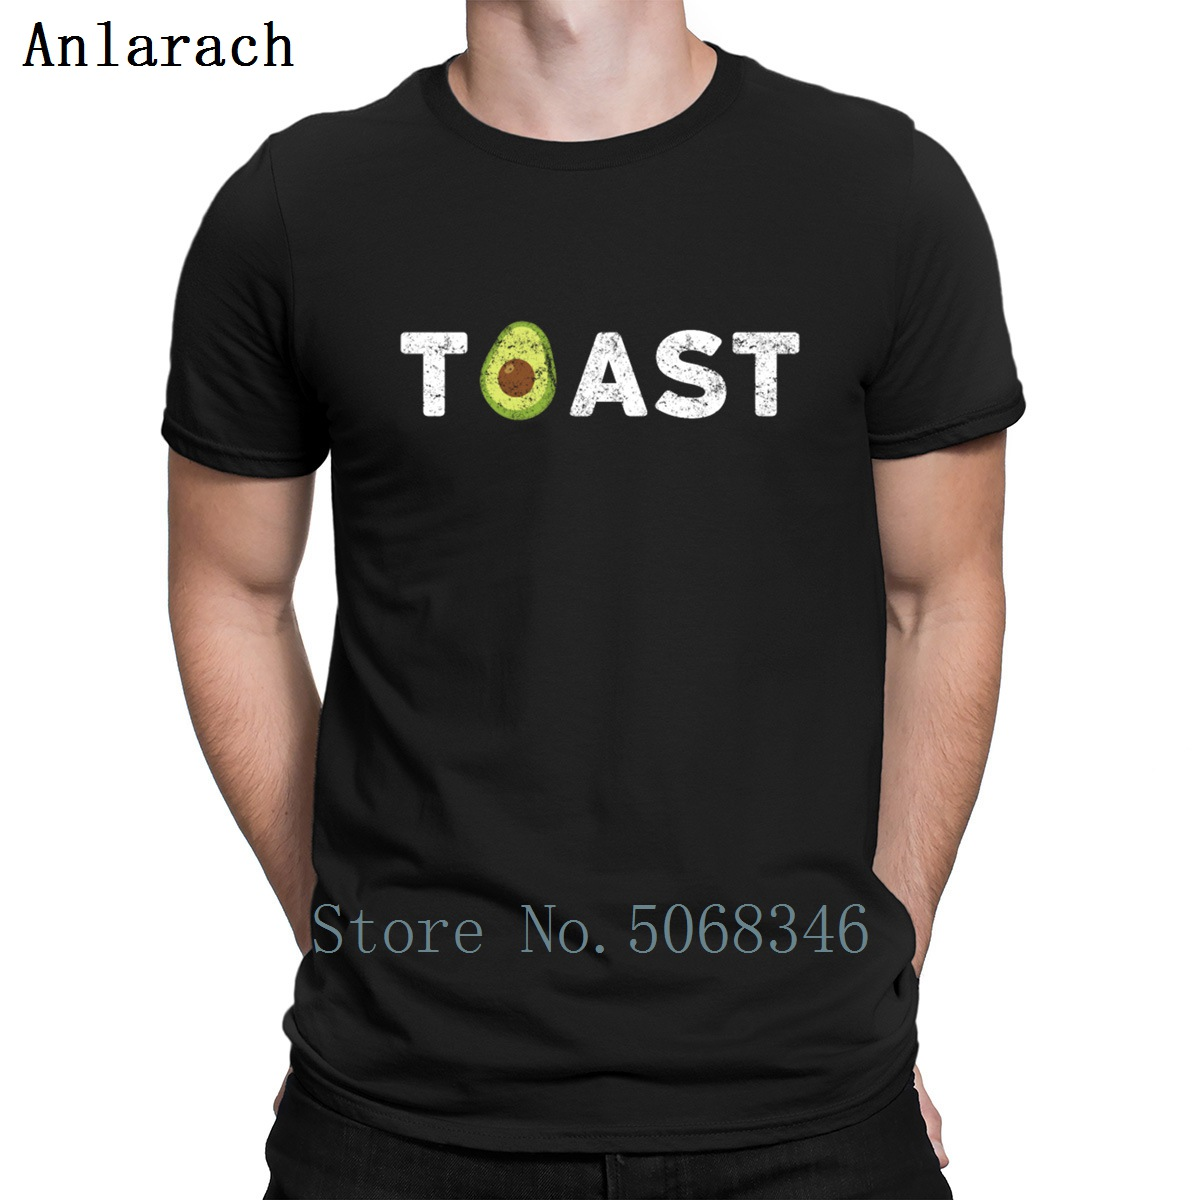 Keto Avocado Toast Funny Design T Shirt Customize Size S-3xl Sunlight Summer Style Authentic Standard Letters Tee Shirt Shirt